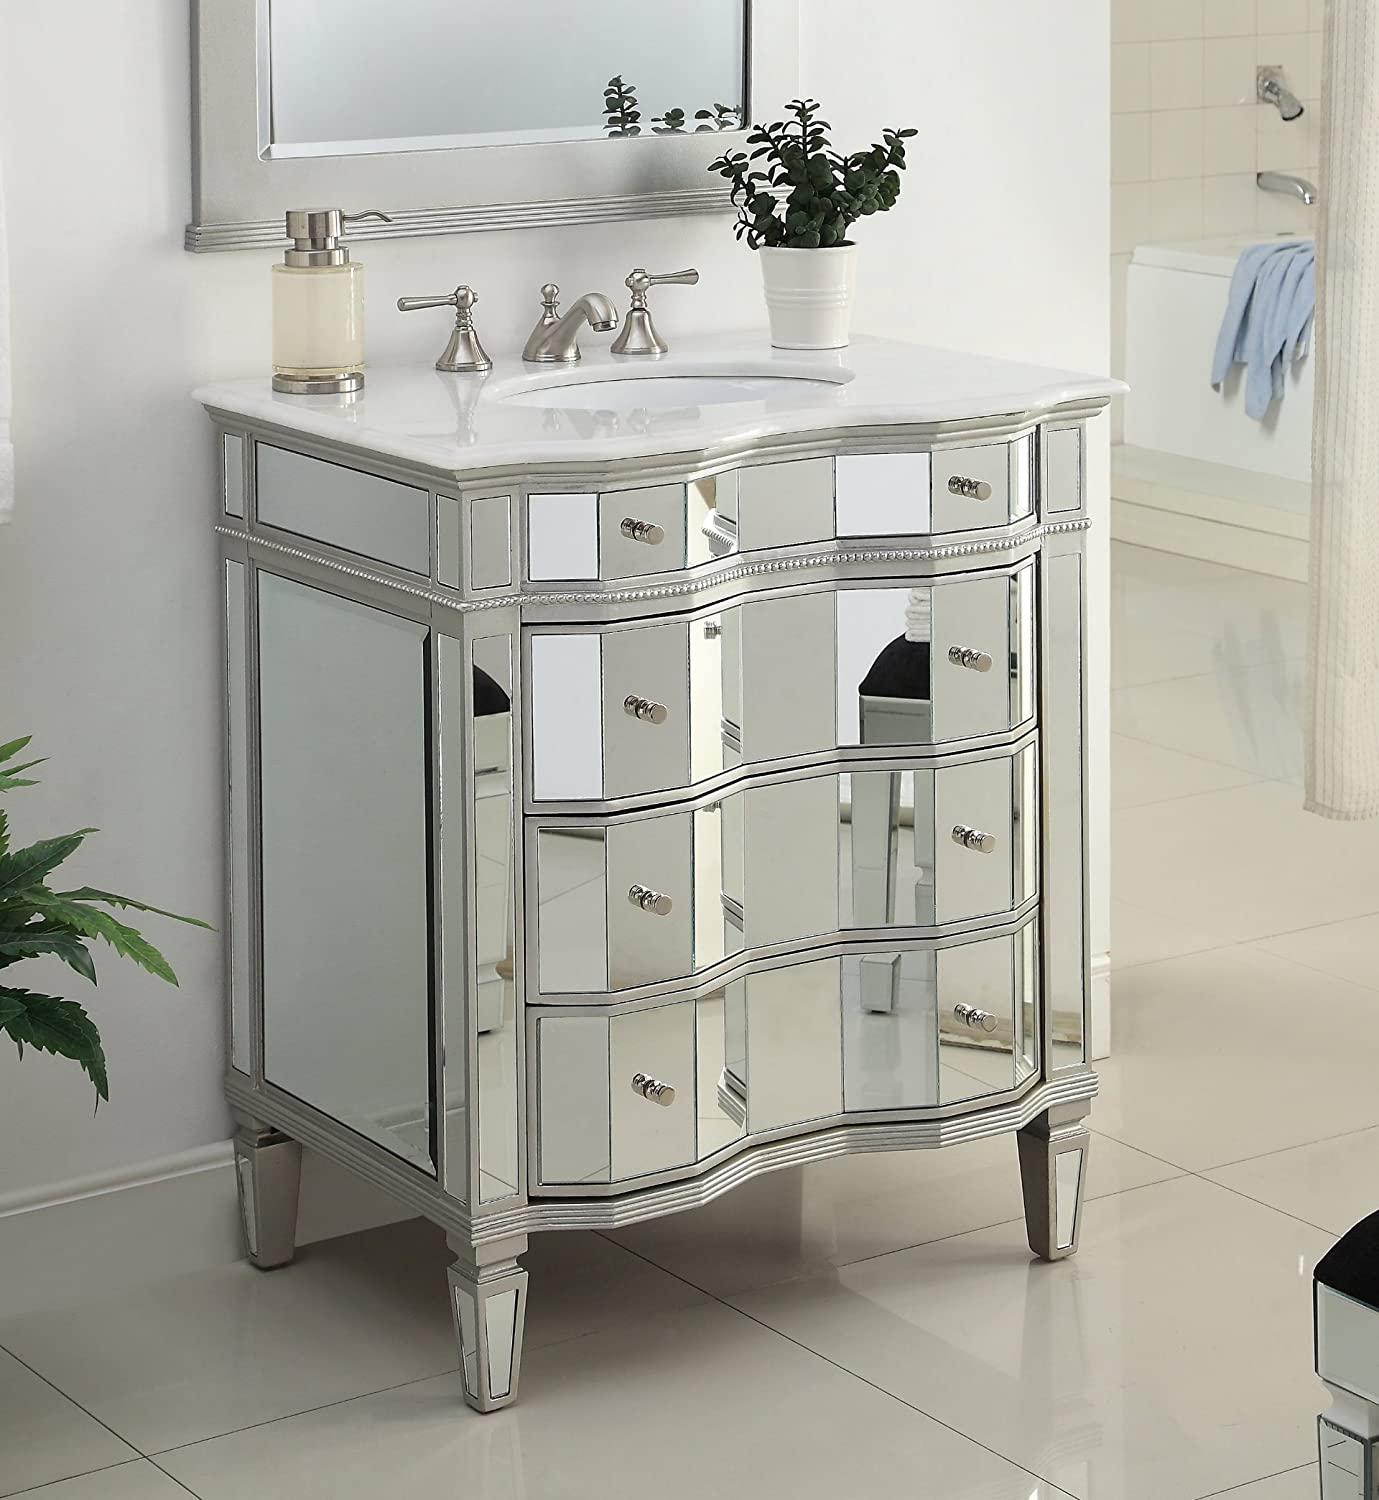 30 Chans Furniture Mirrored Reflection Ashley Bathroom Sink Vanity Mirror Included BWV 025 FWM 2434